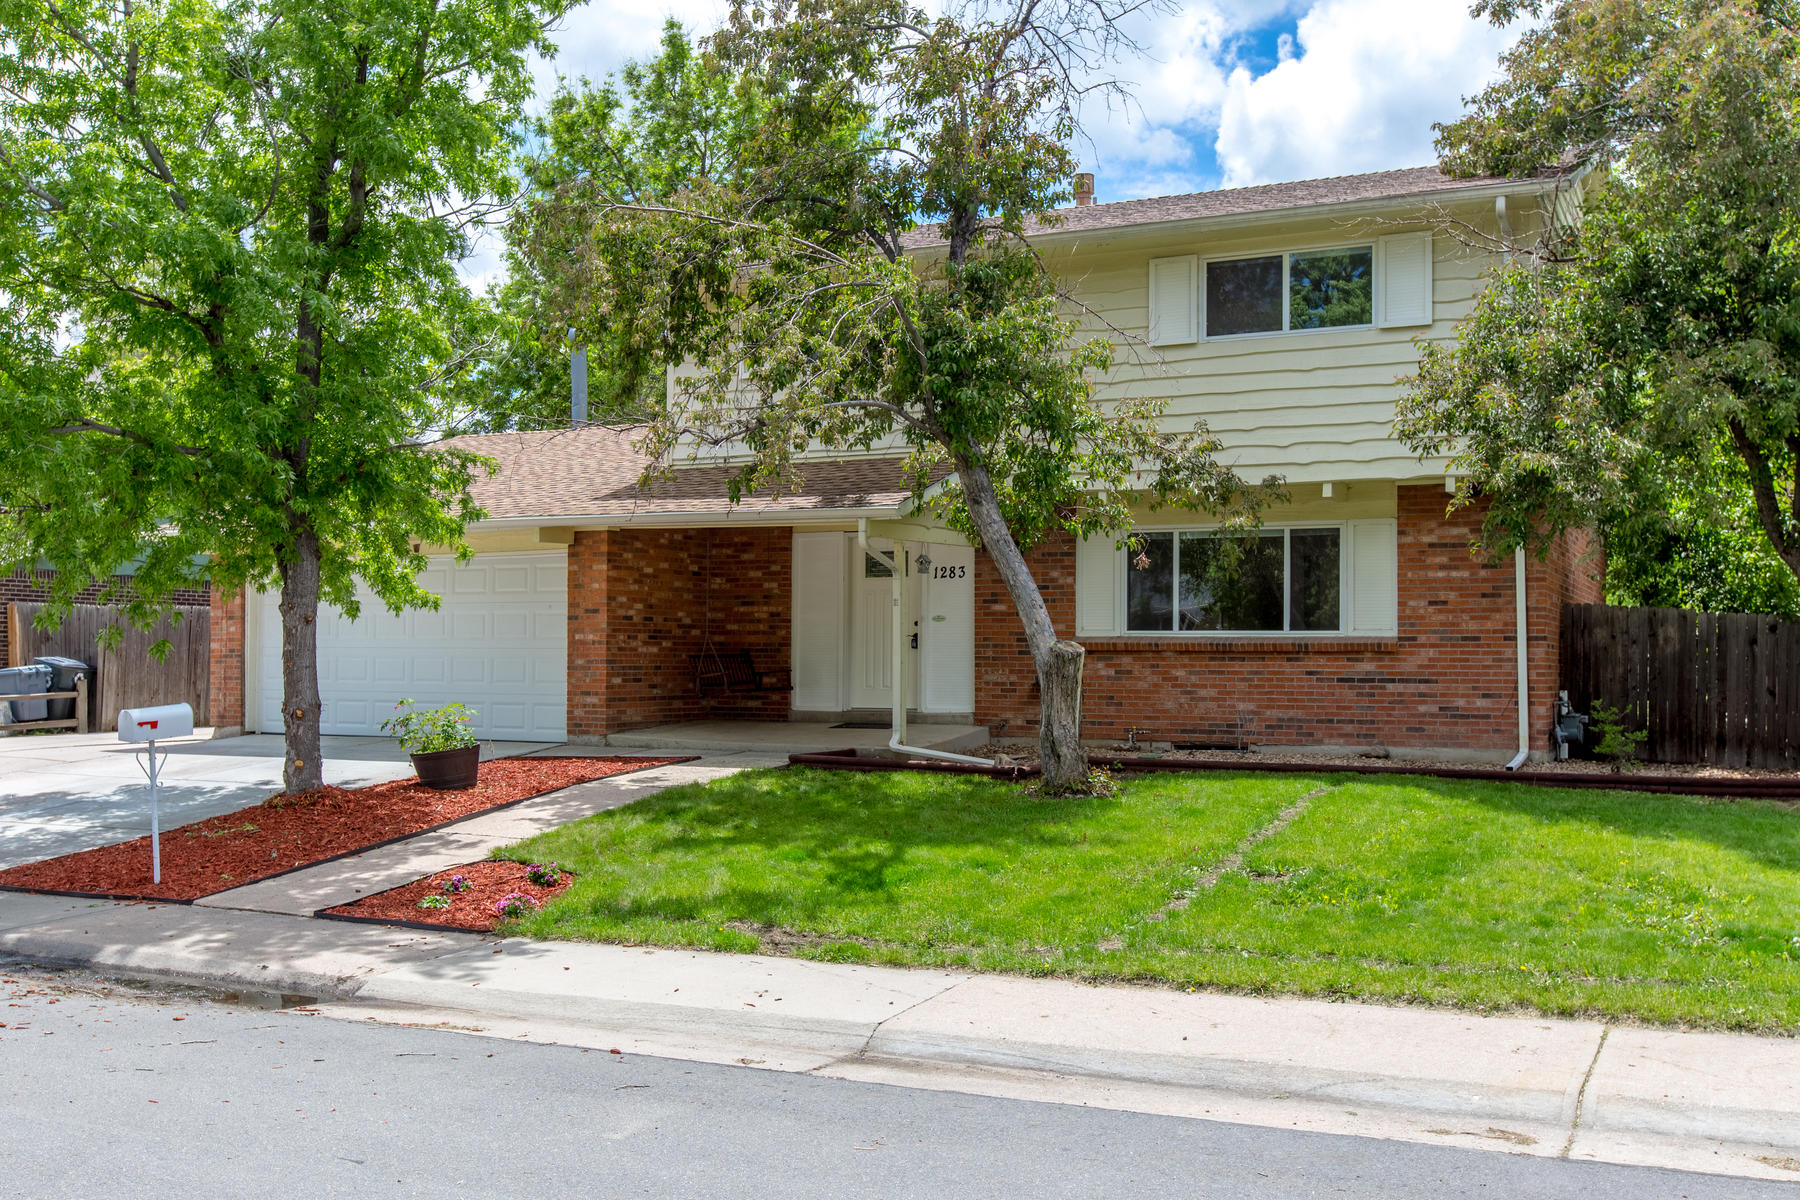 Casa unifamiliar en venta en/de 1283 S Johnson Way, Lakewood, Colorado ,80232  , EUA